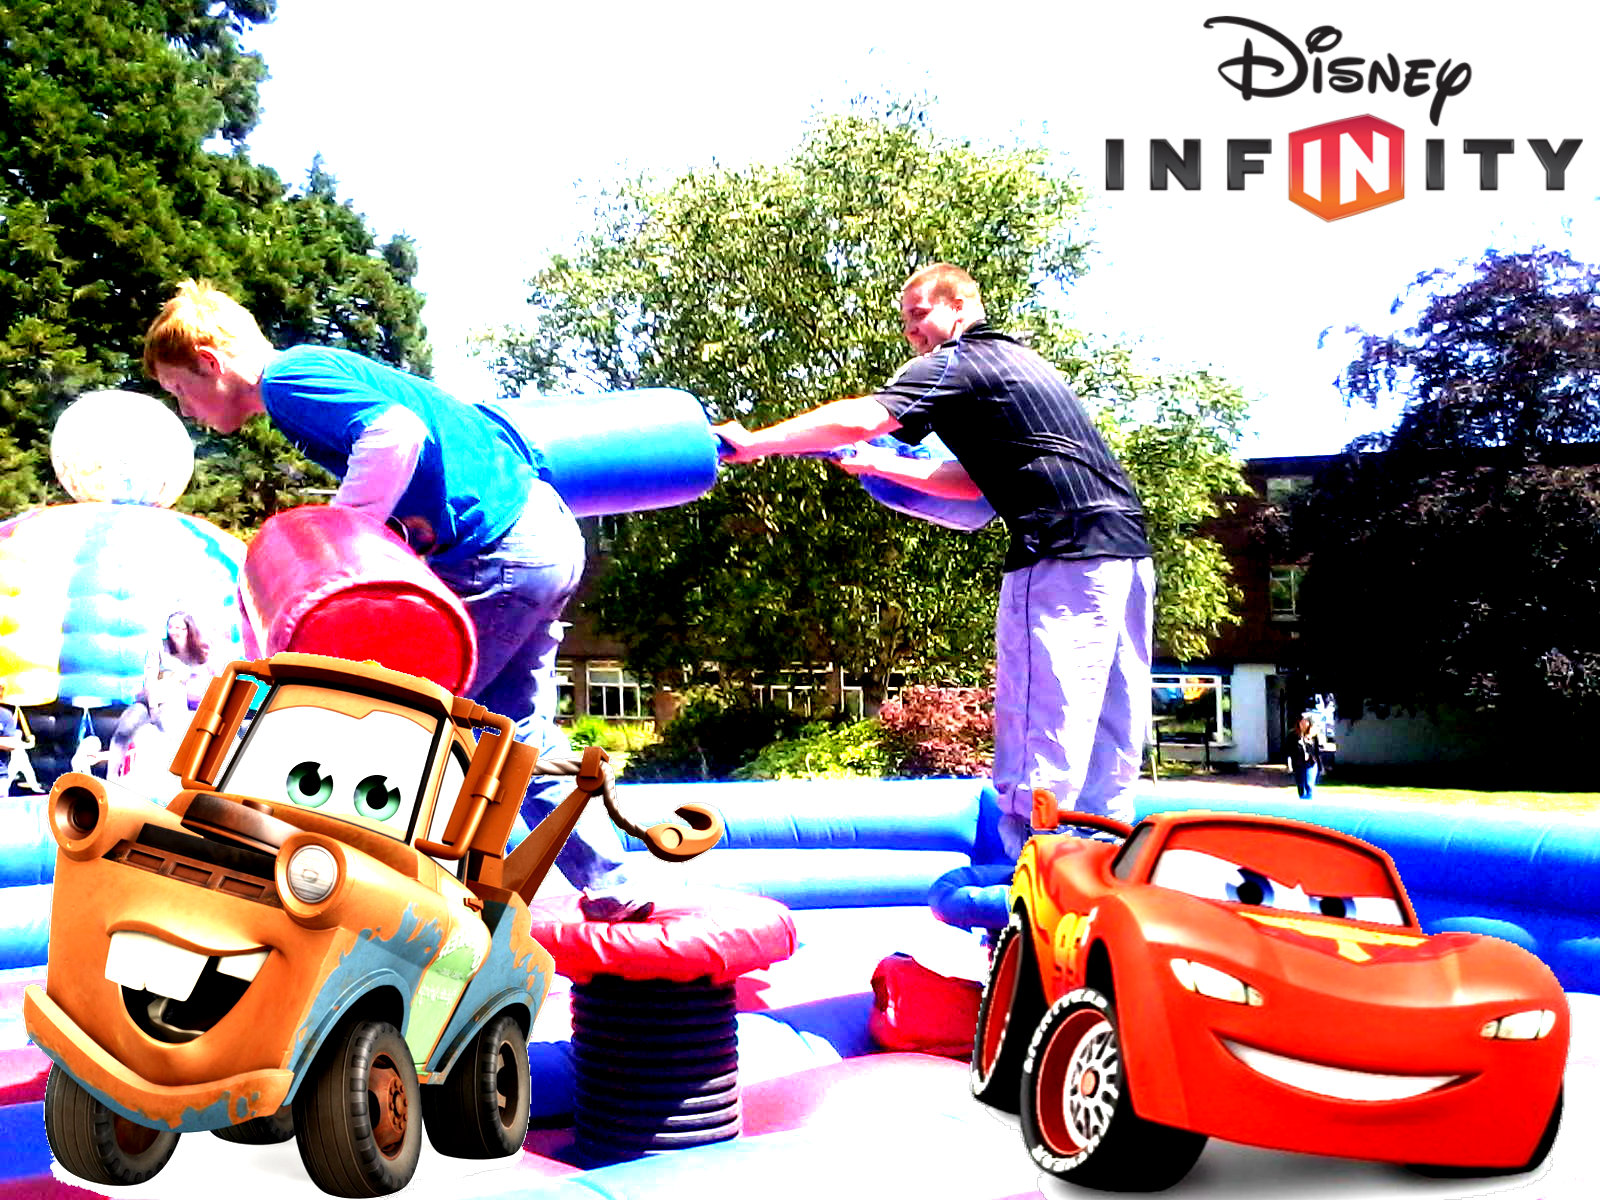 Mater & McQueen are battling in the Air